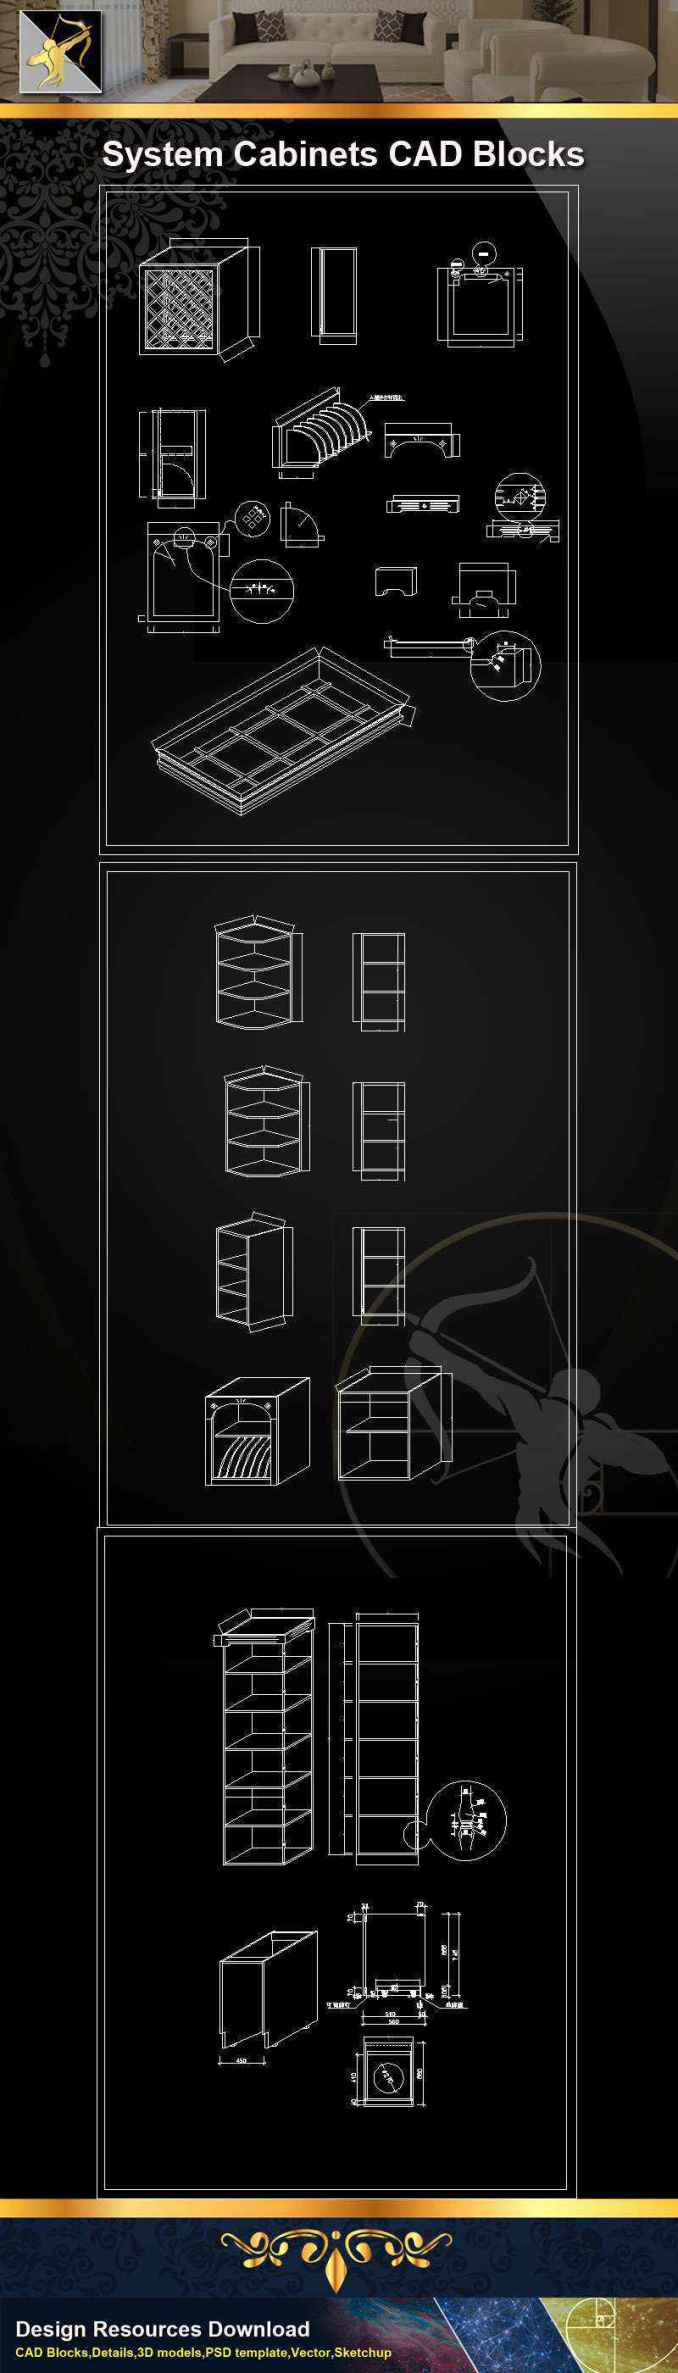 ★【 System Cabinets CAD Drawings V.3】@Autocad Blocks,Drawings,CAD Details,Elevation